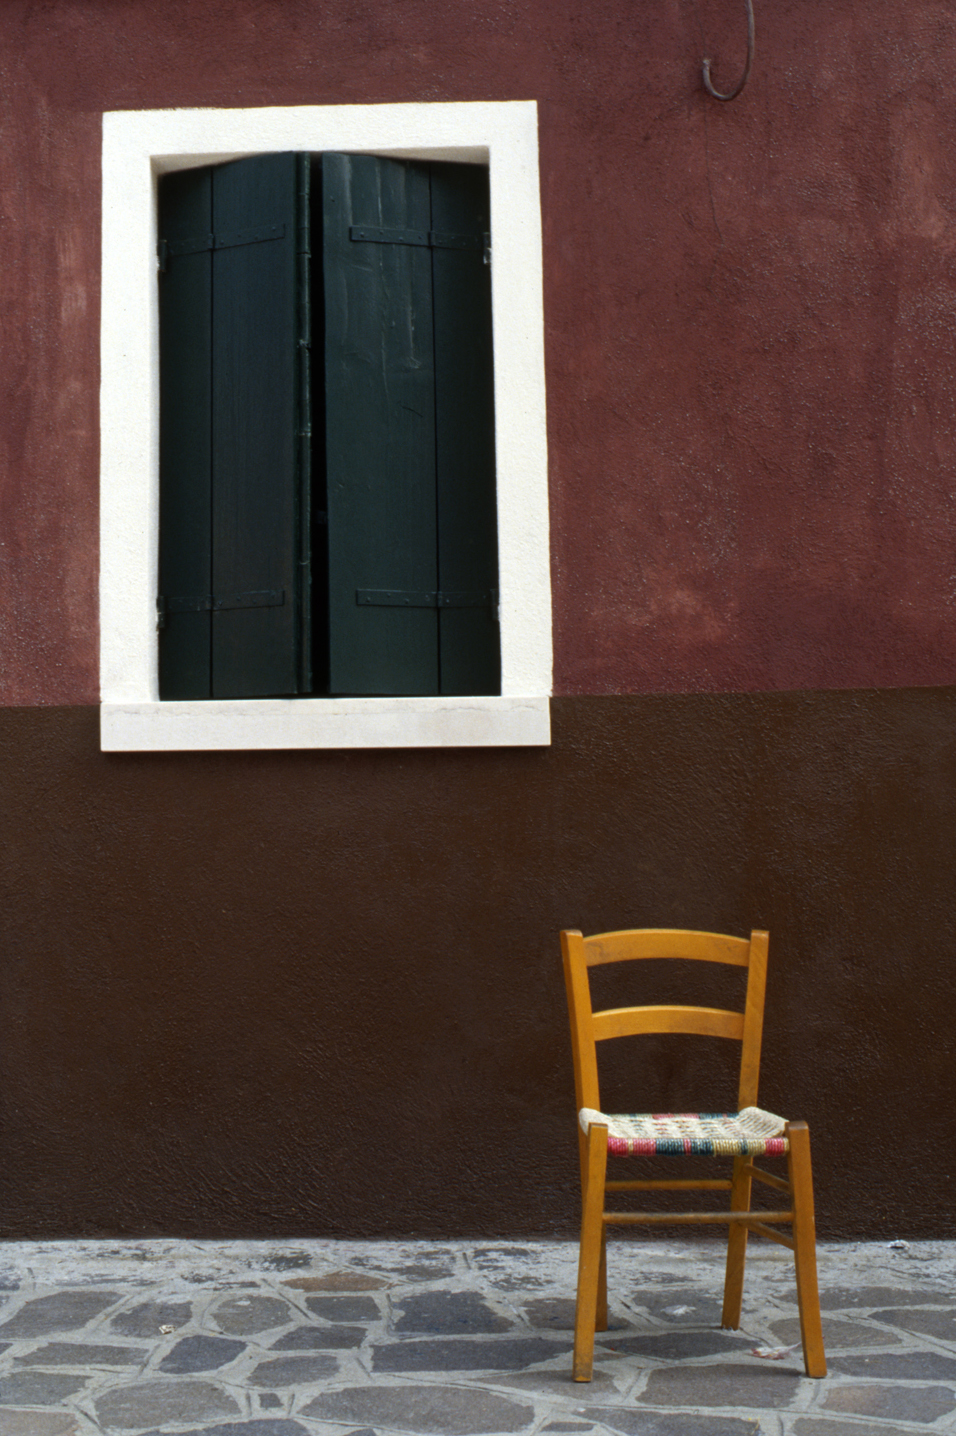 Yellow Chair, Burano Italy, 1978 , Cibachrome Print, 24 x 16cm, Edition of 10.                            Exhibition:  Burano Colour Works , Australian Centre for Photography, Sydney; Solander Gallery, Canberra; Wagga Wagga City Art Gallery, Wagga Wagga, 1979.